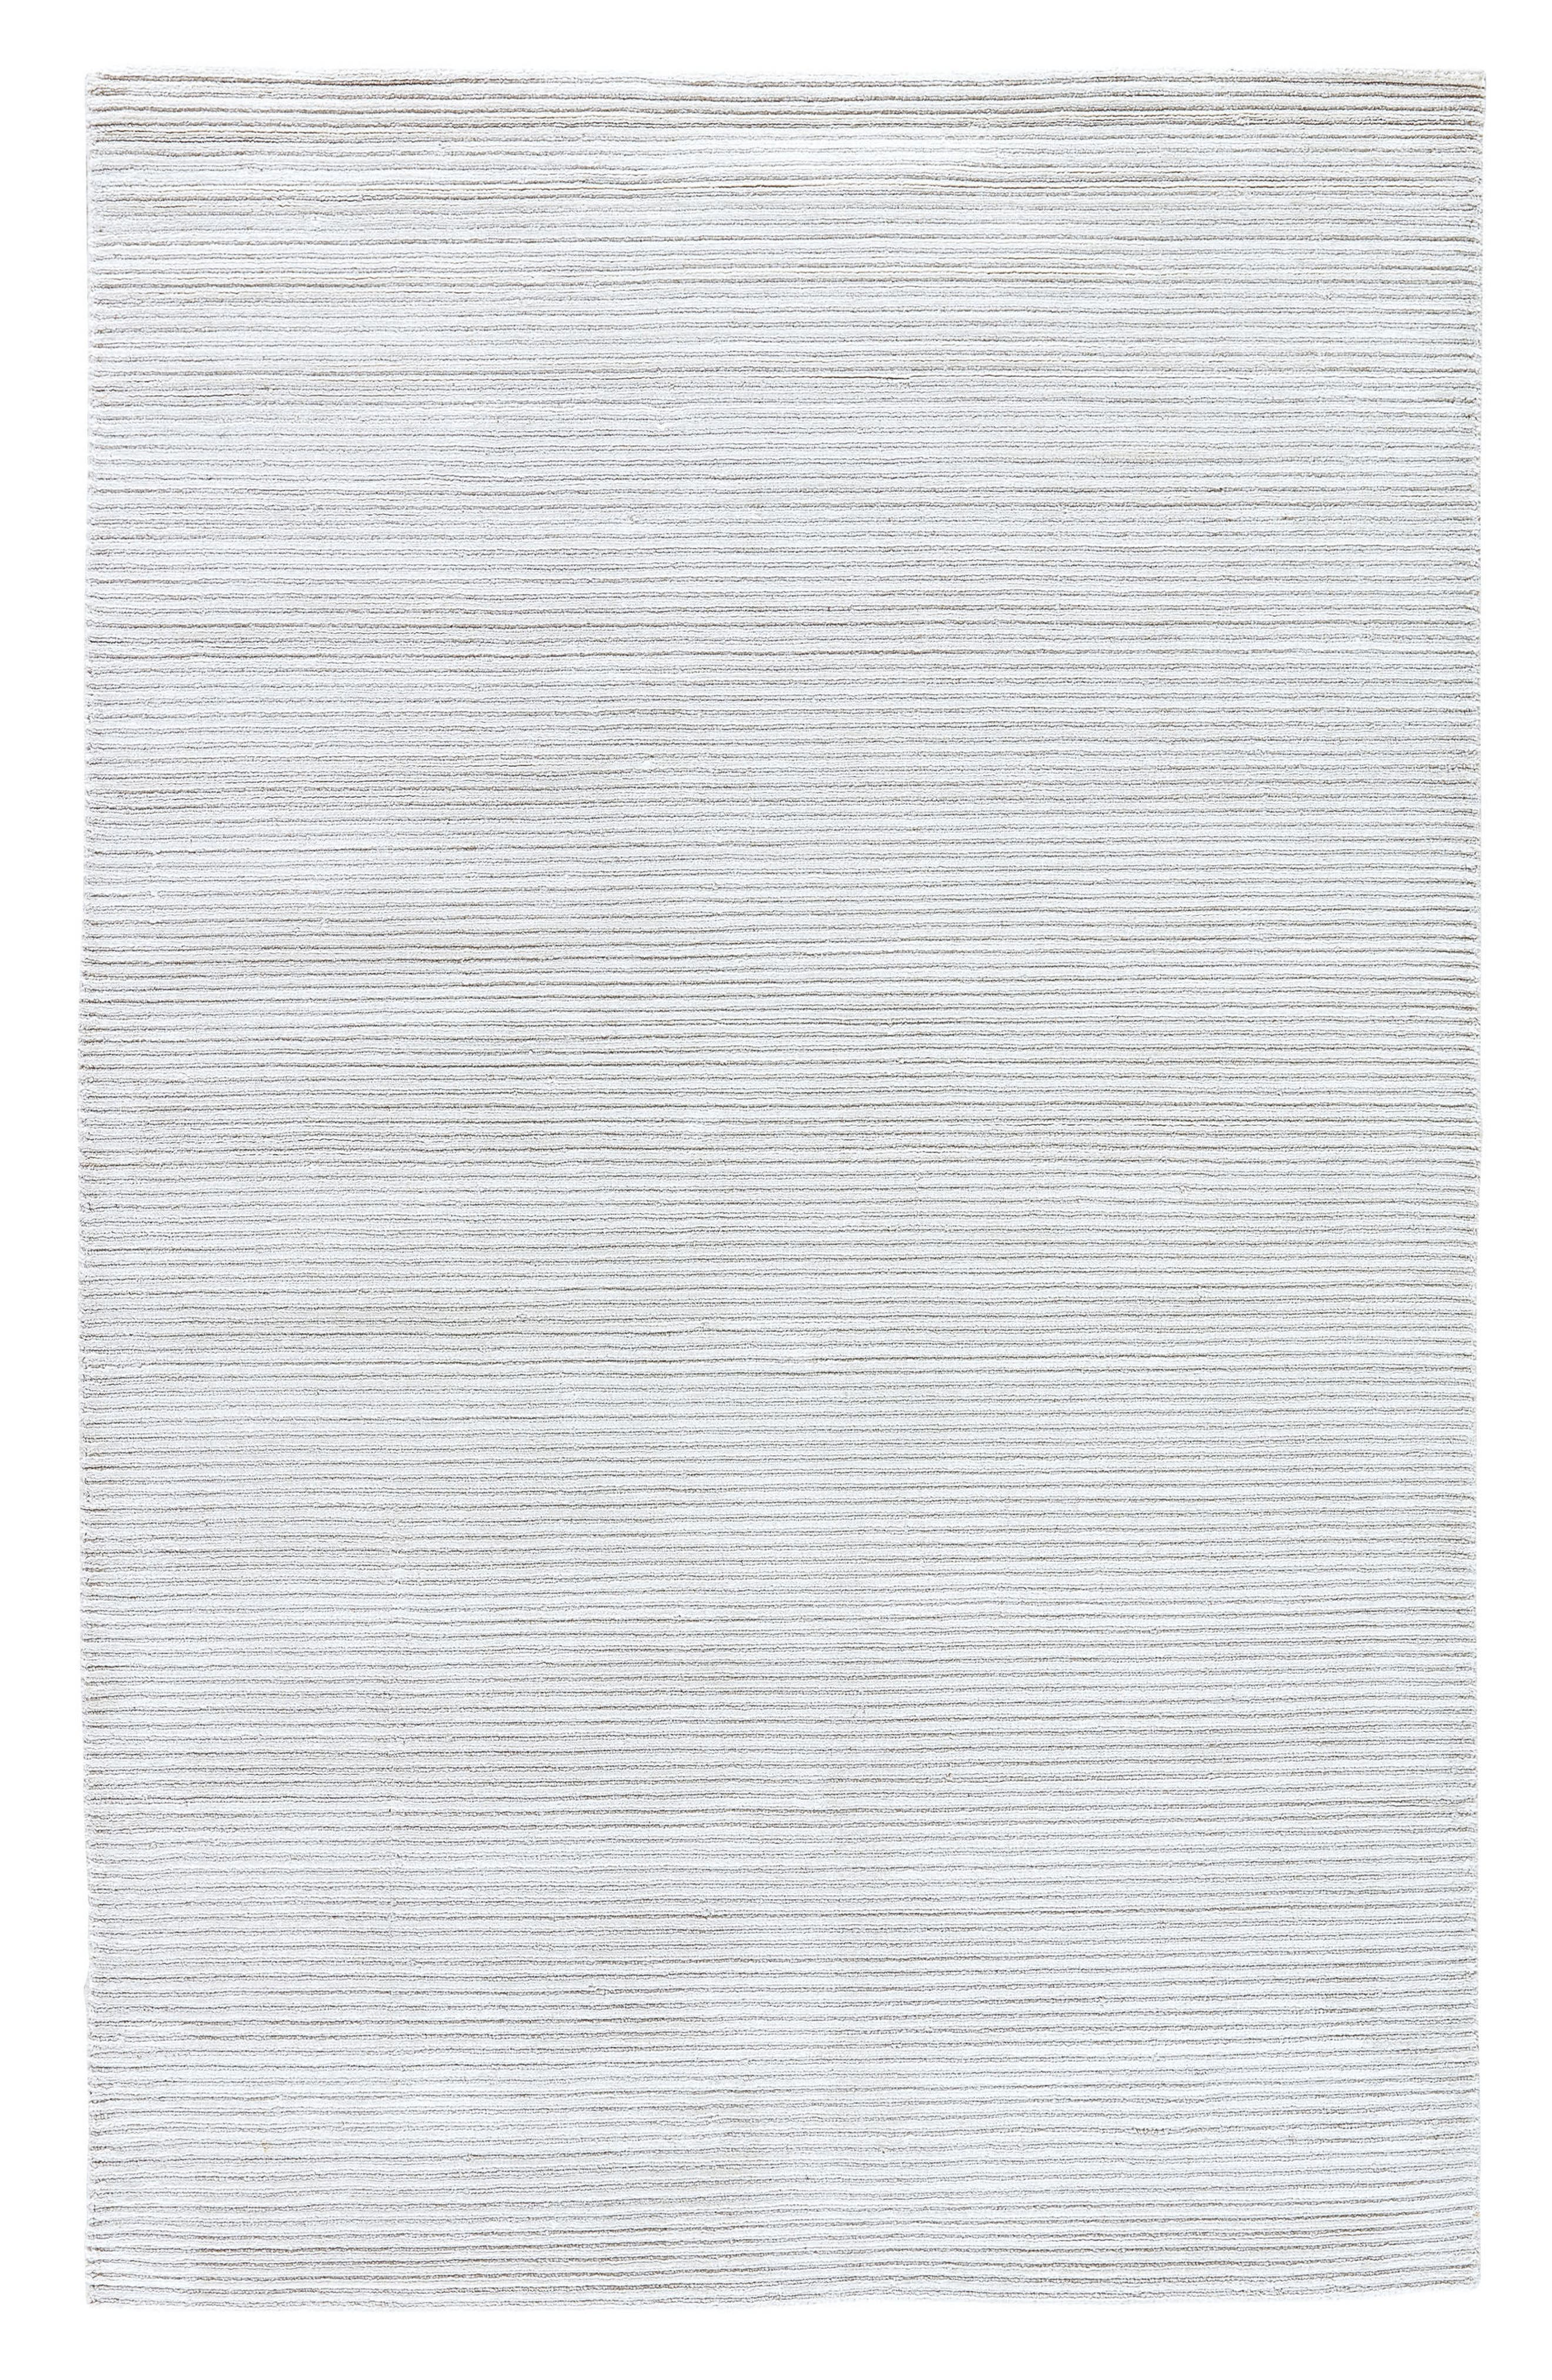 Basis Rug,                             Main thumbnail 1, color,                             Snow White